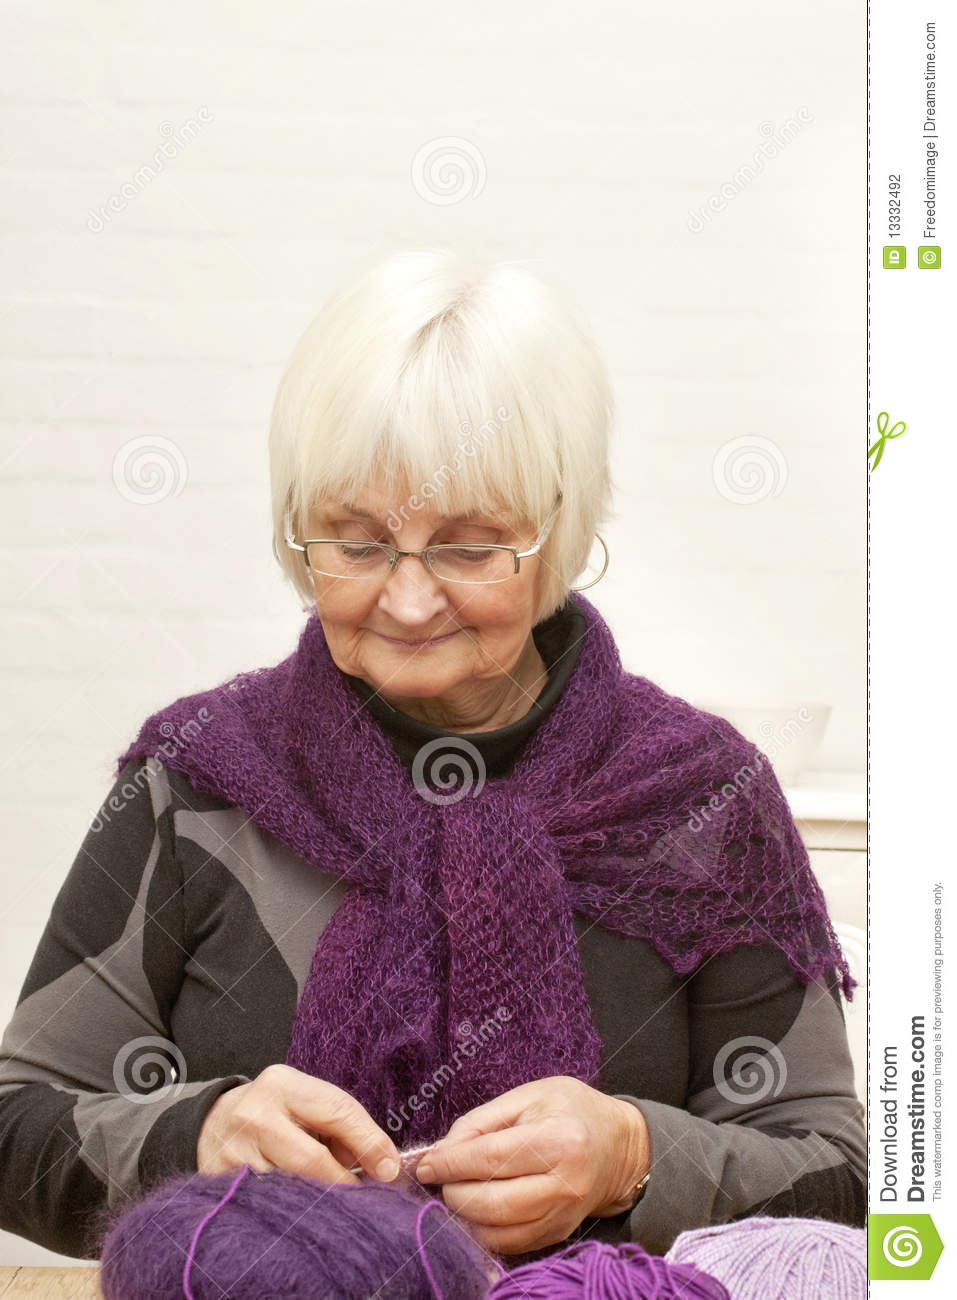 Old Knitting Woman : Handcraft old woman knitting stock photography image